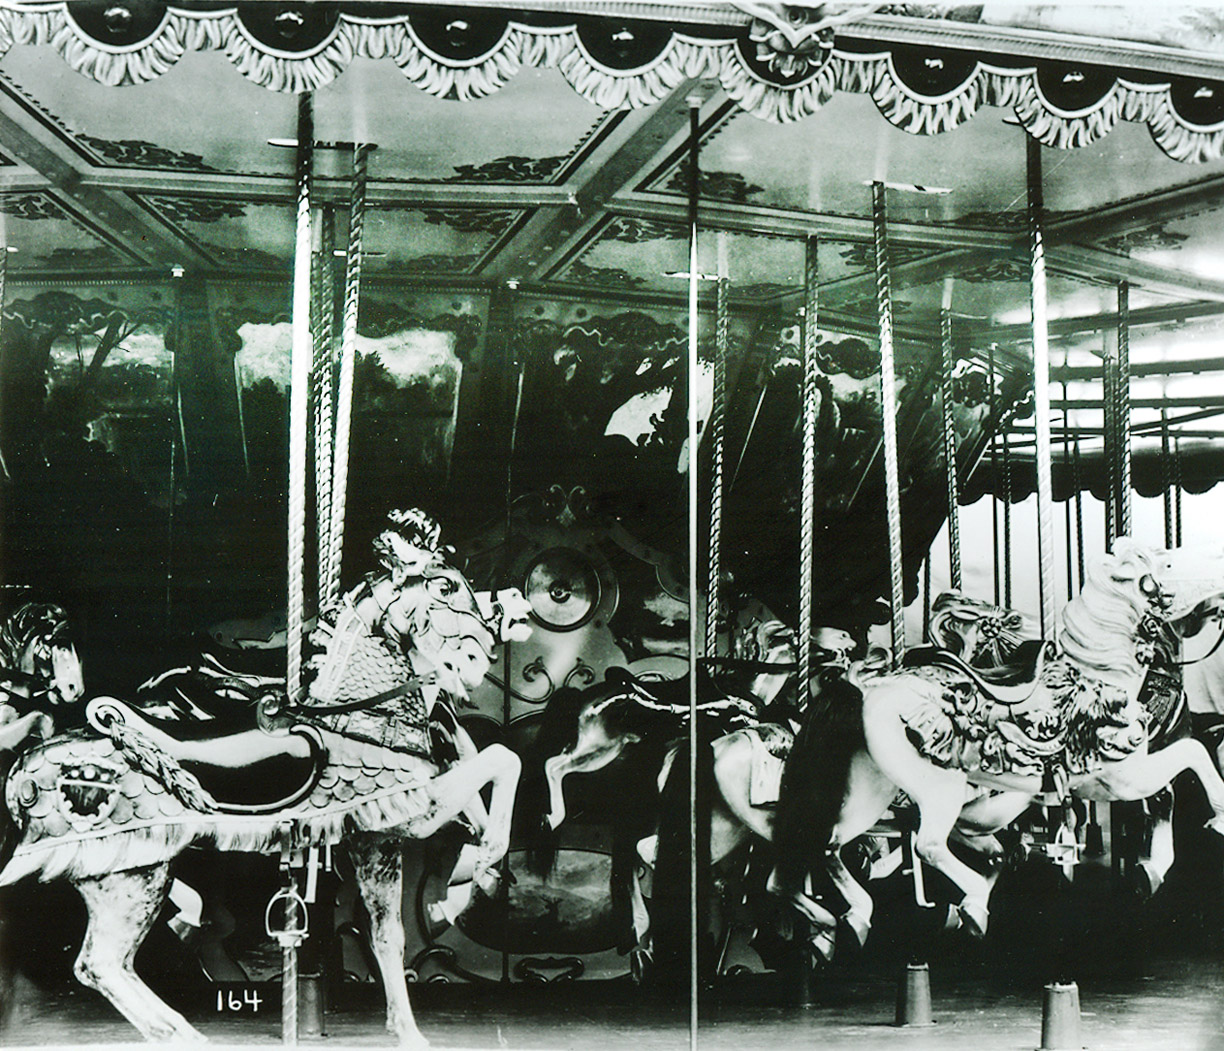 ca-1910-Hershcell-Spillman-menagerie-carousel-catalog-archive